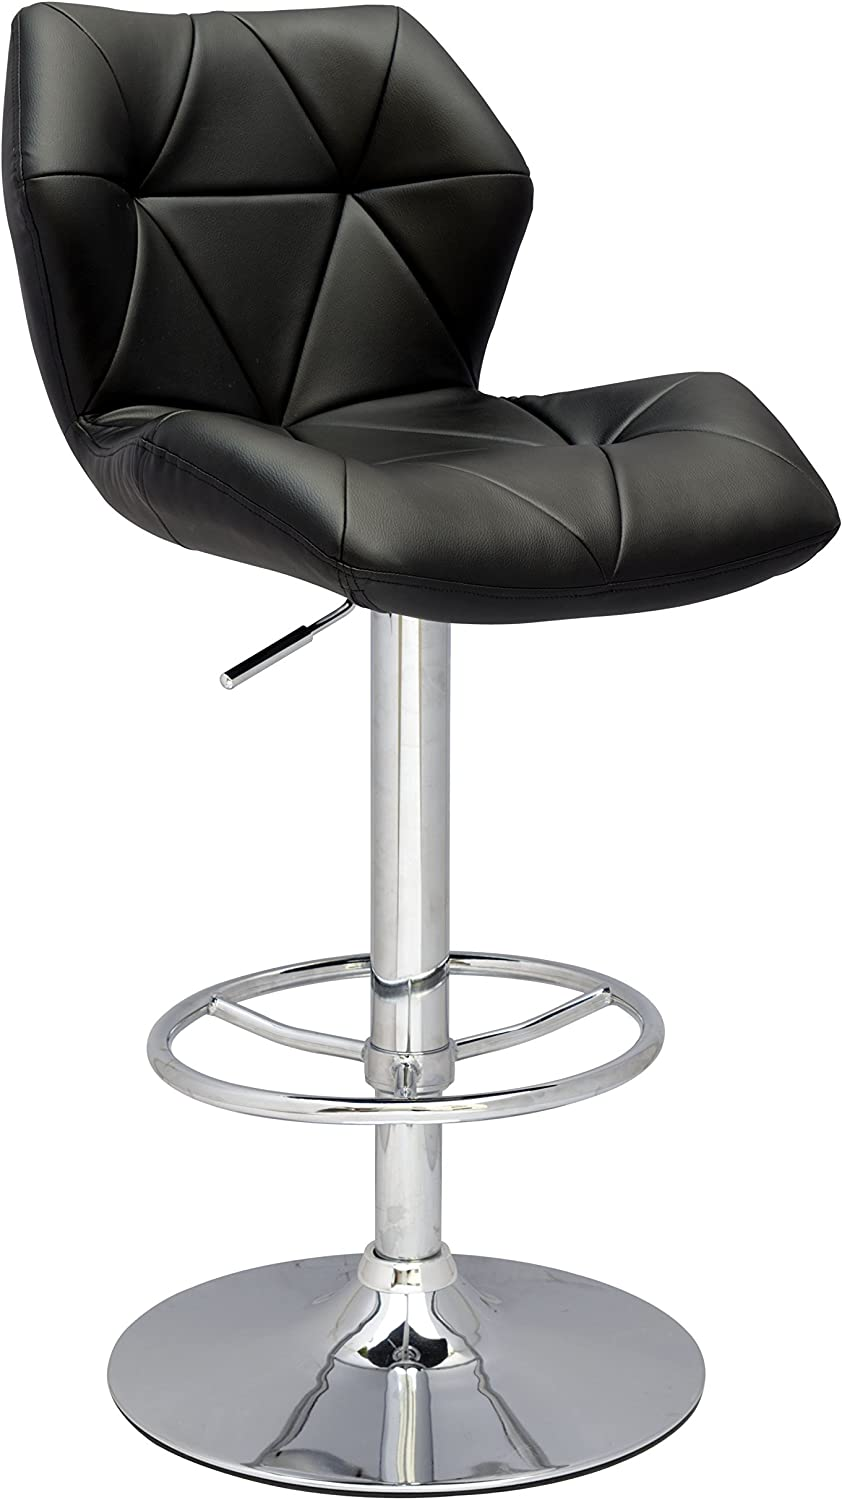 Milan Margaret Black Pneumatic Gas Lift Height Swivel Stool